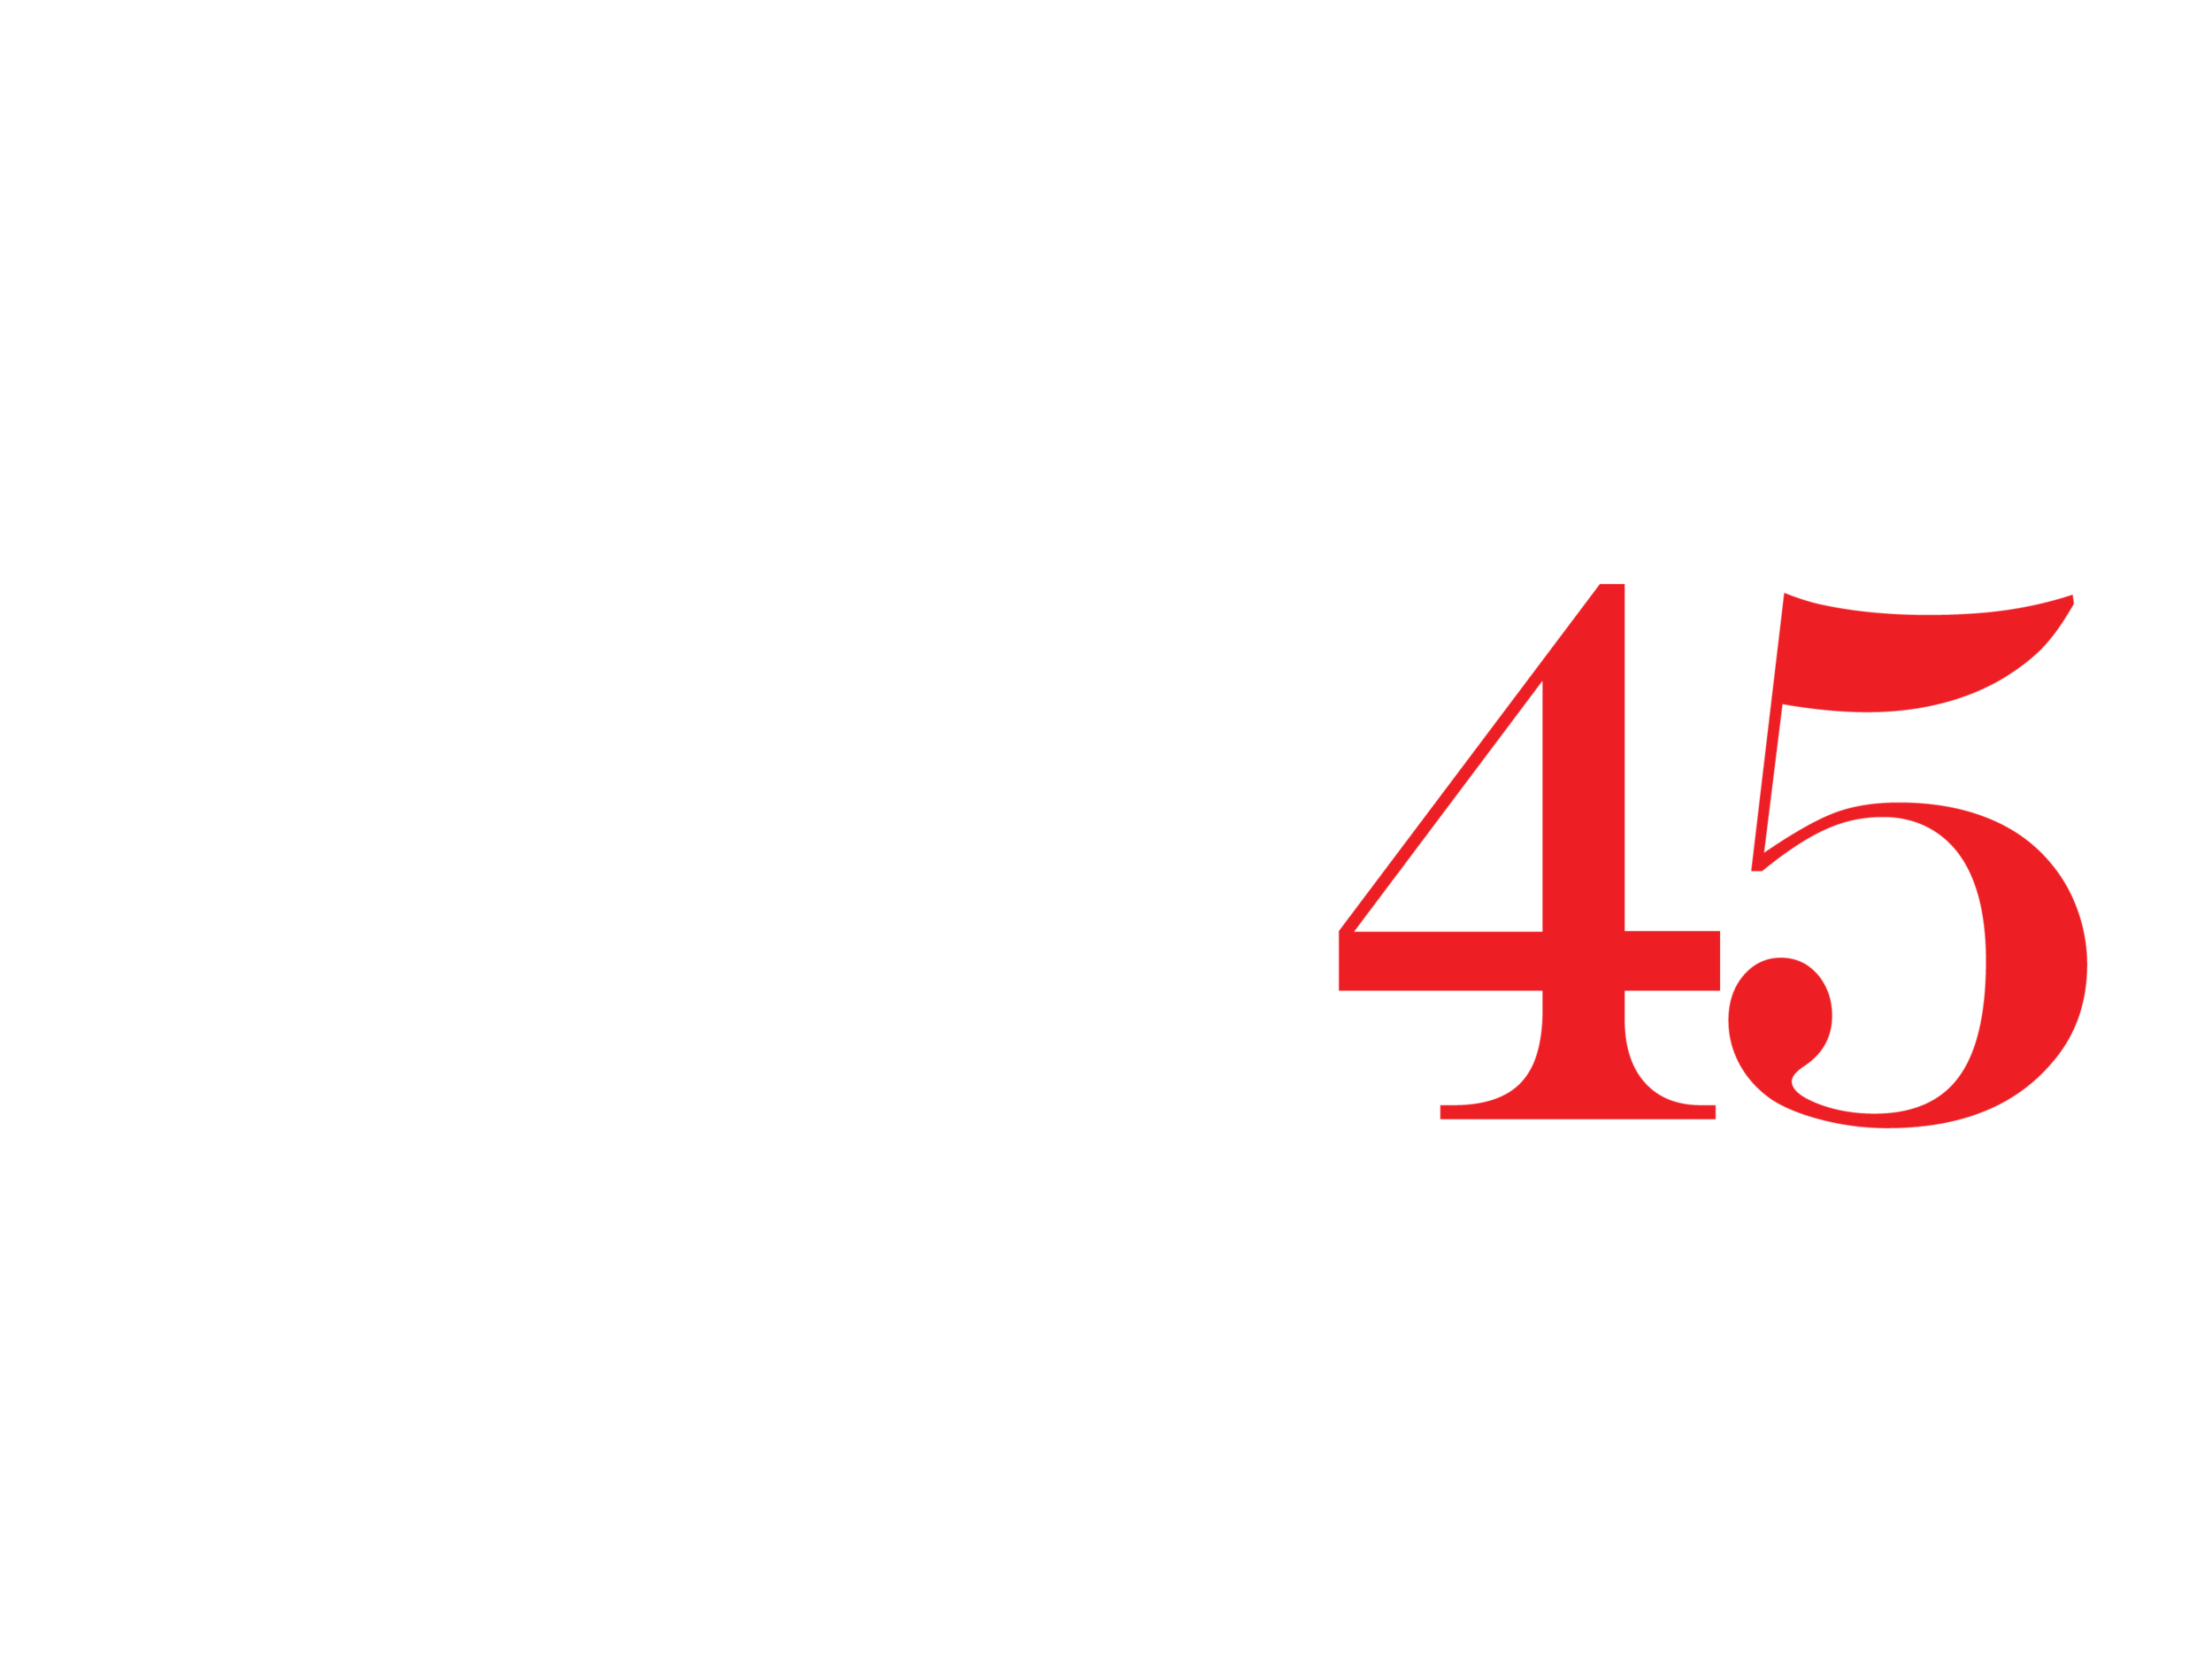 MELBOURNE COLOSSEUM_red-27-27.png